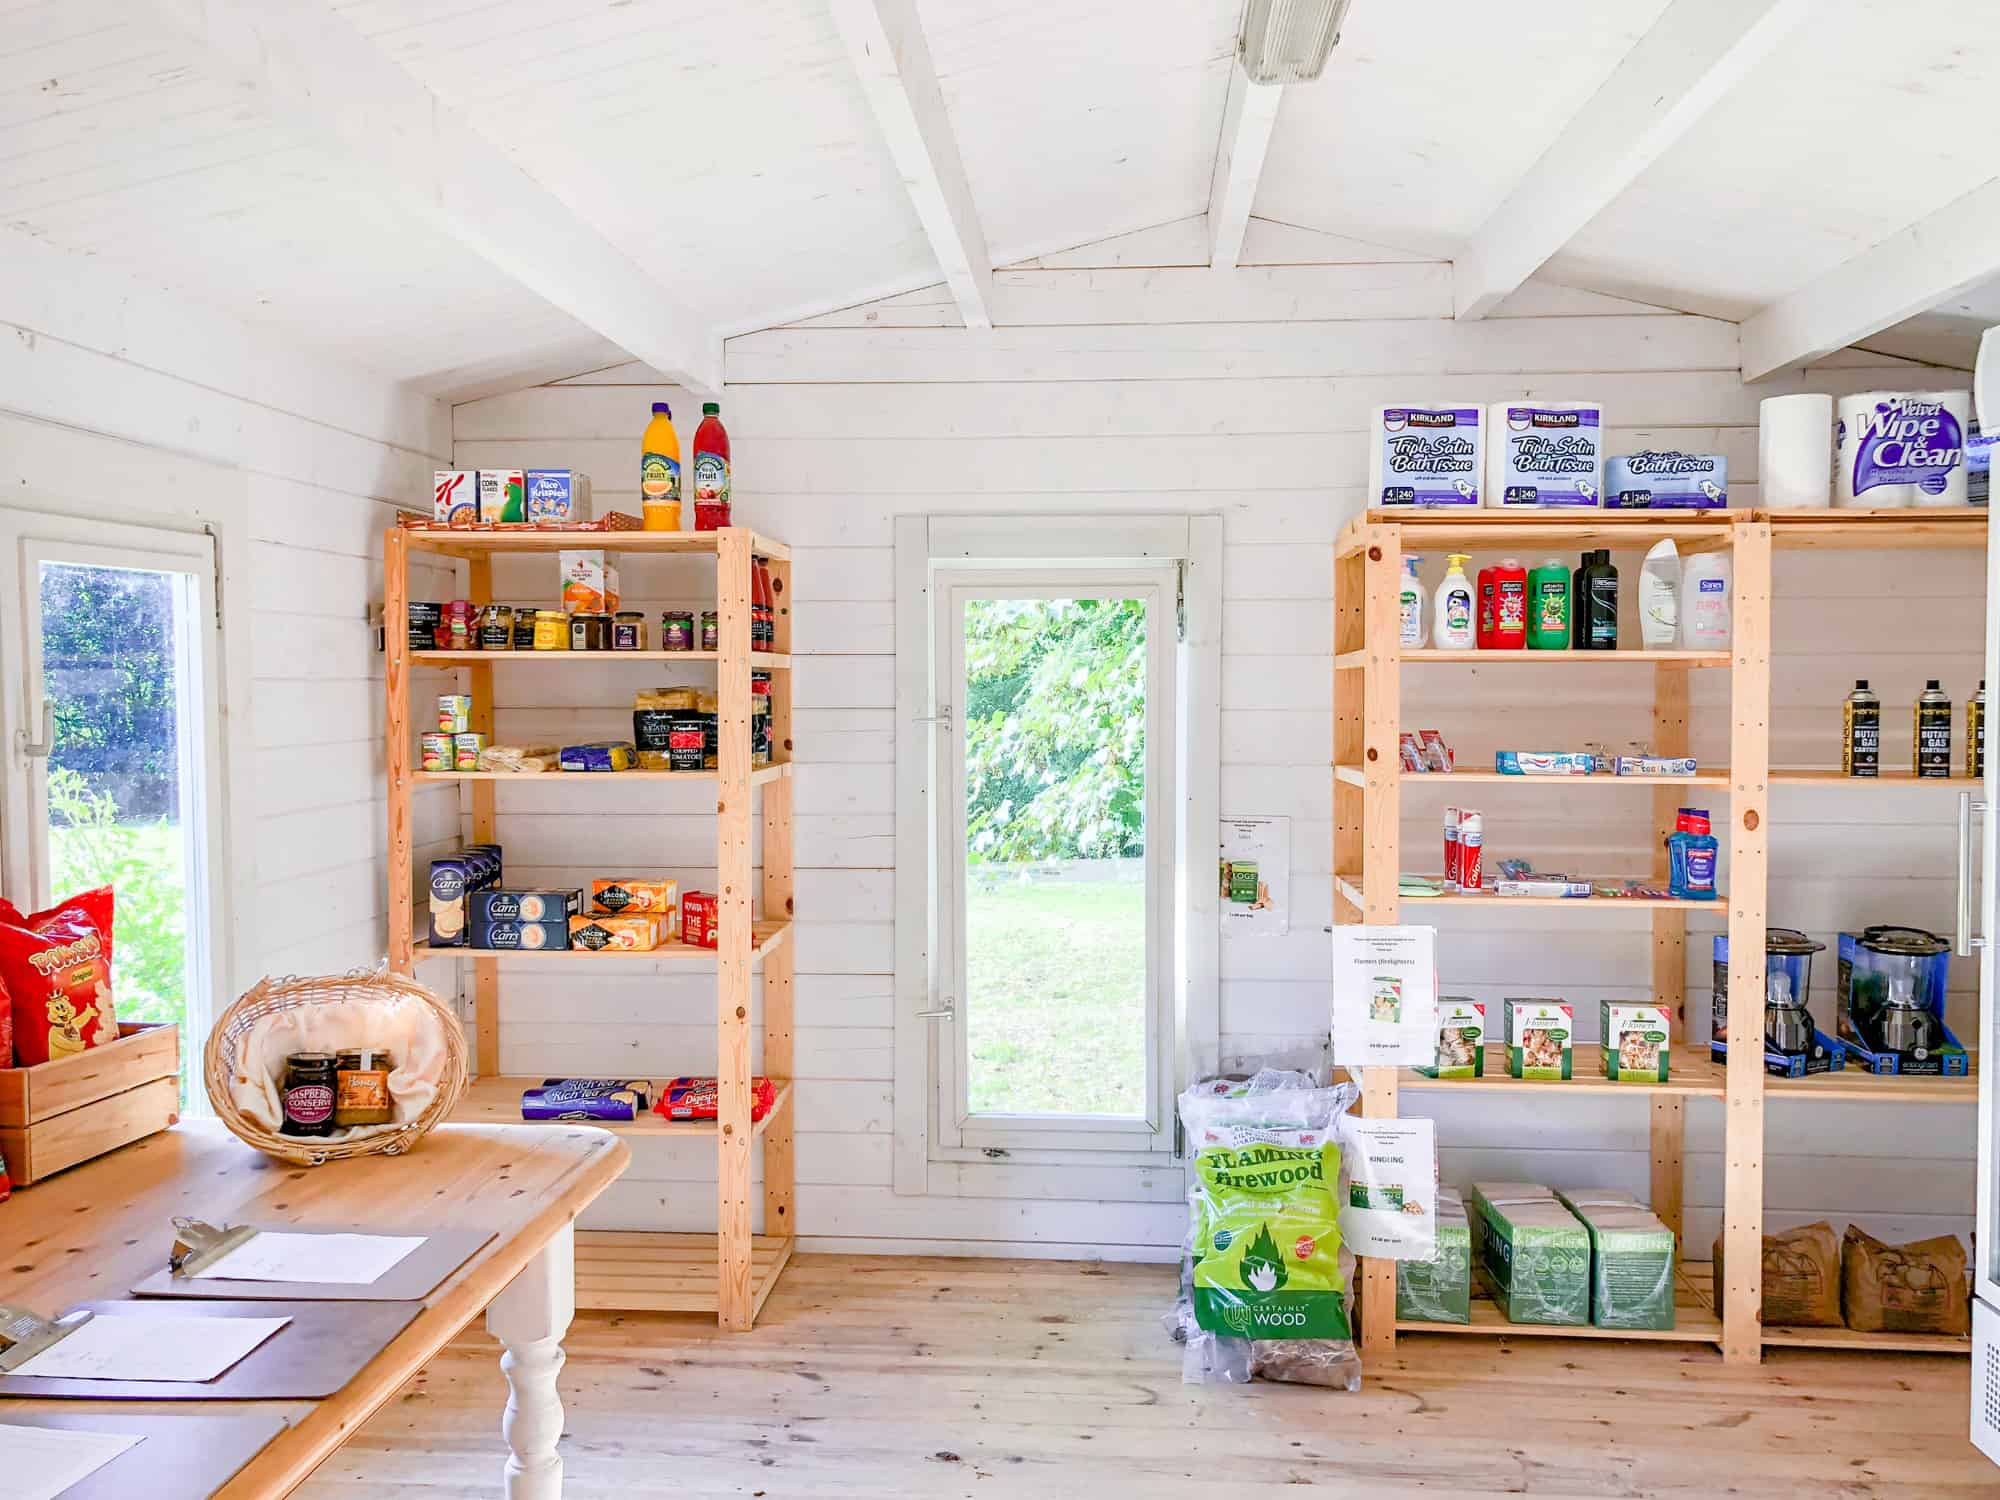 Glamping checklist - food and other essentials